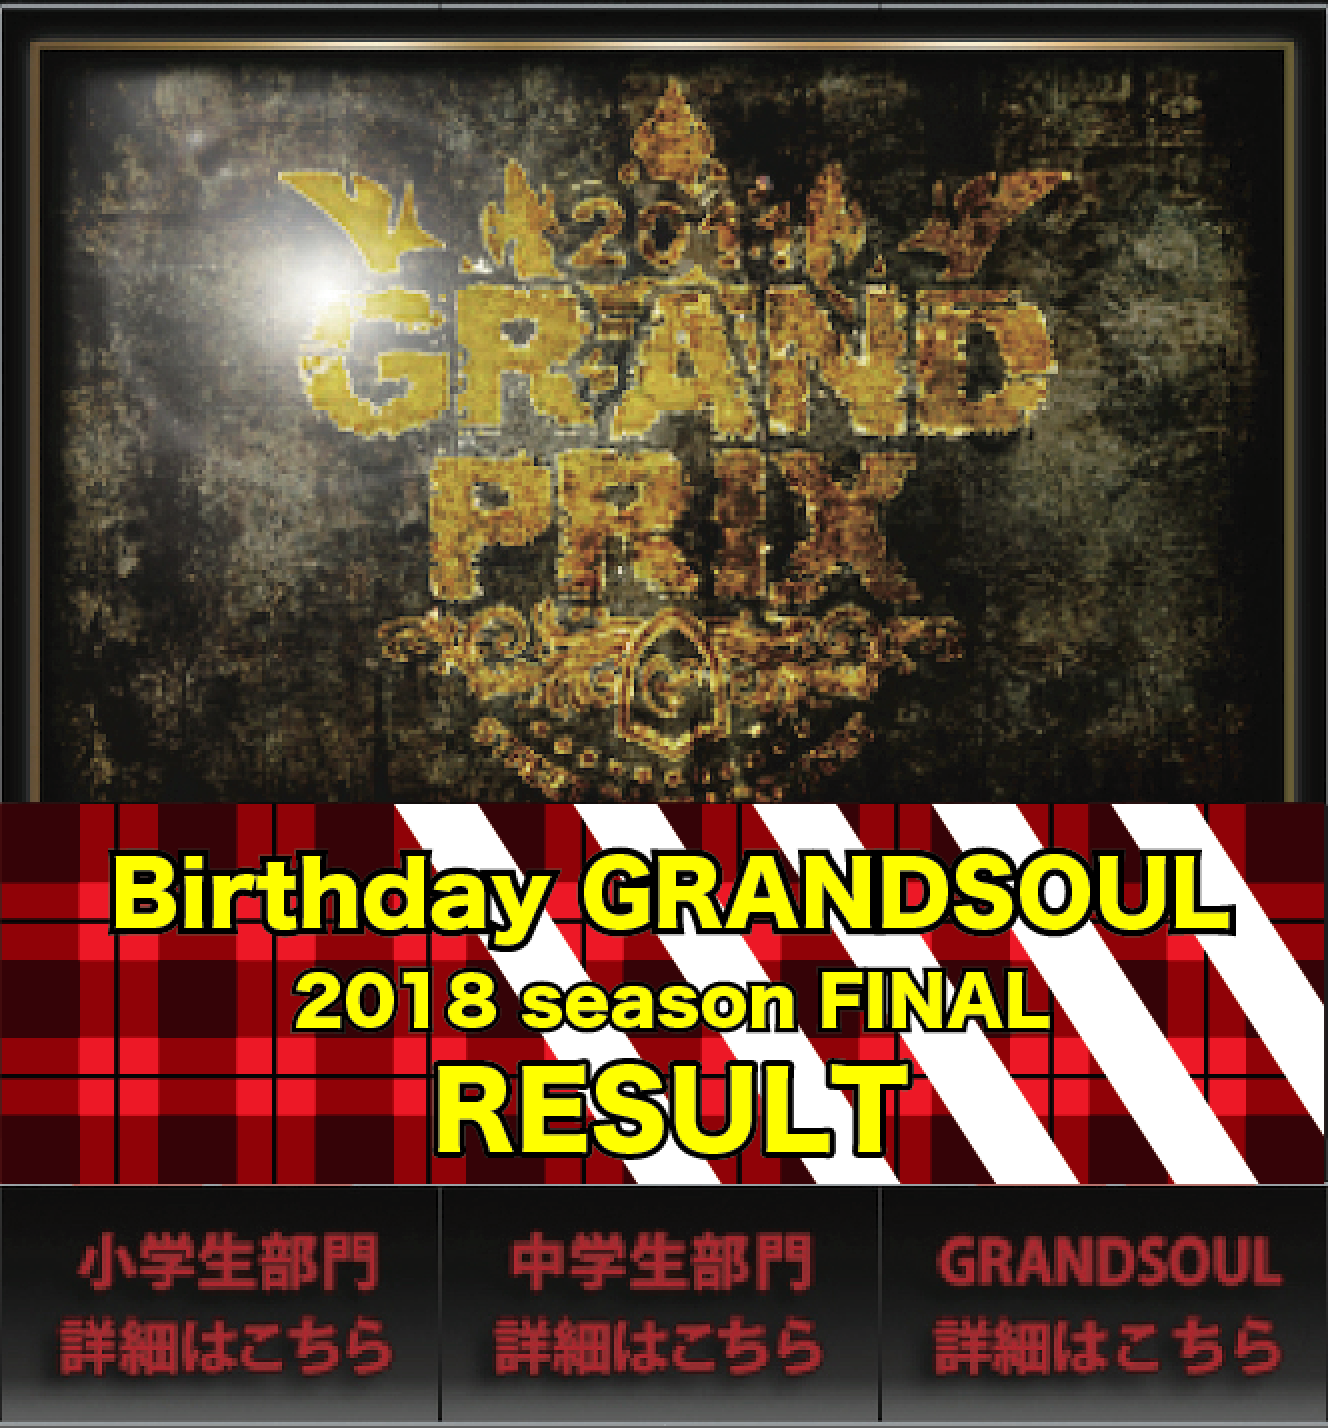 Birthday/GRANDSOUL 2015